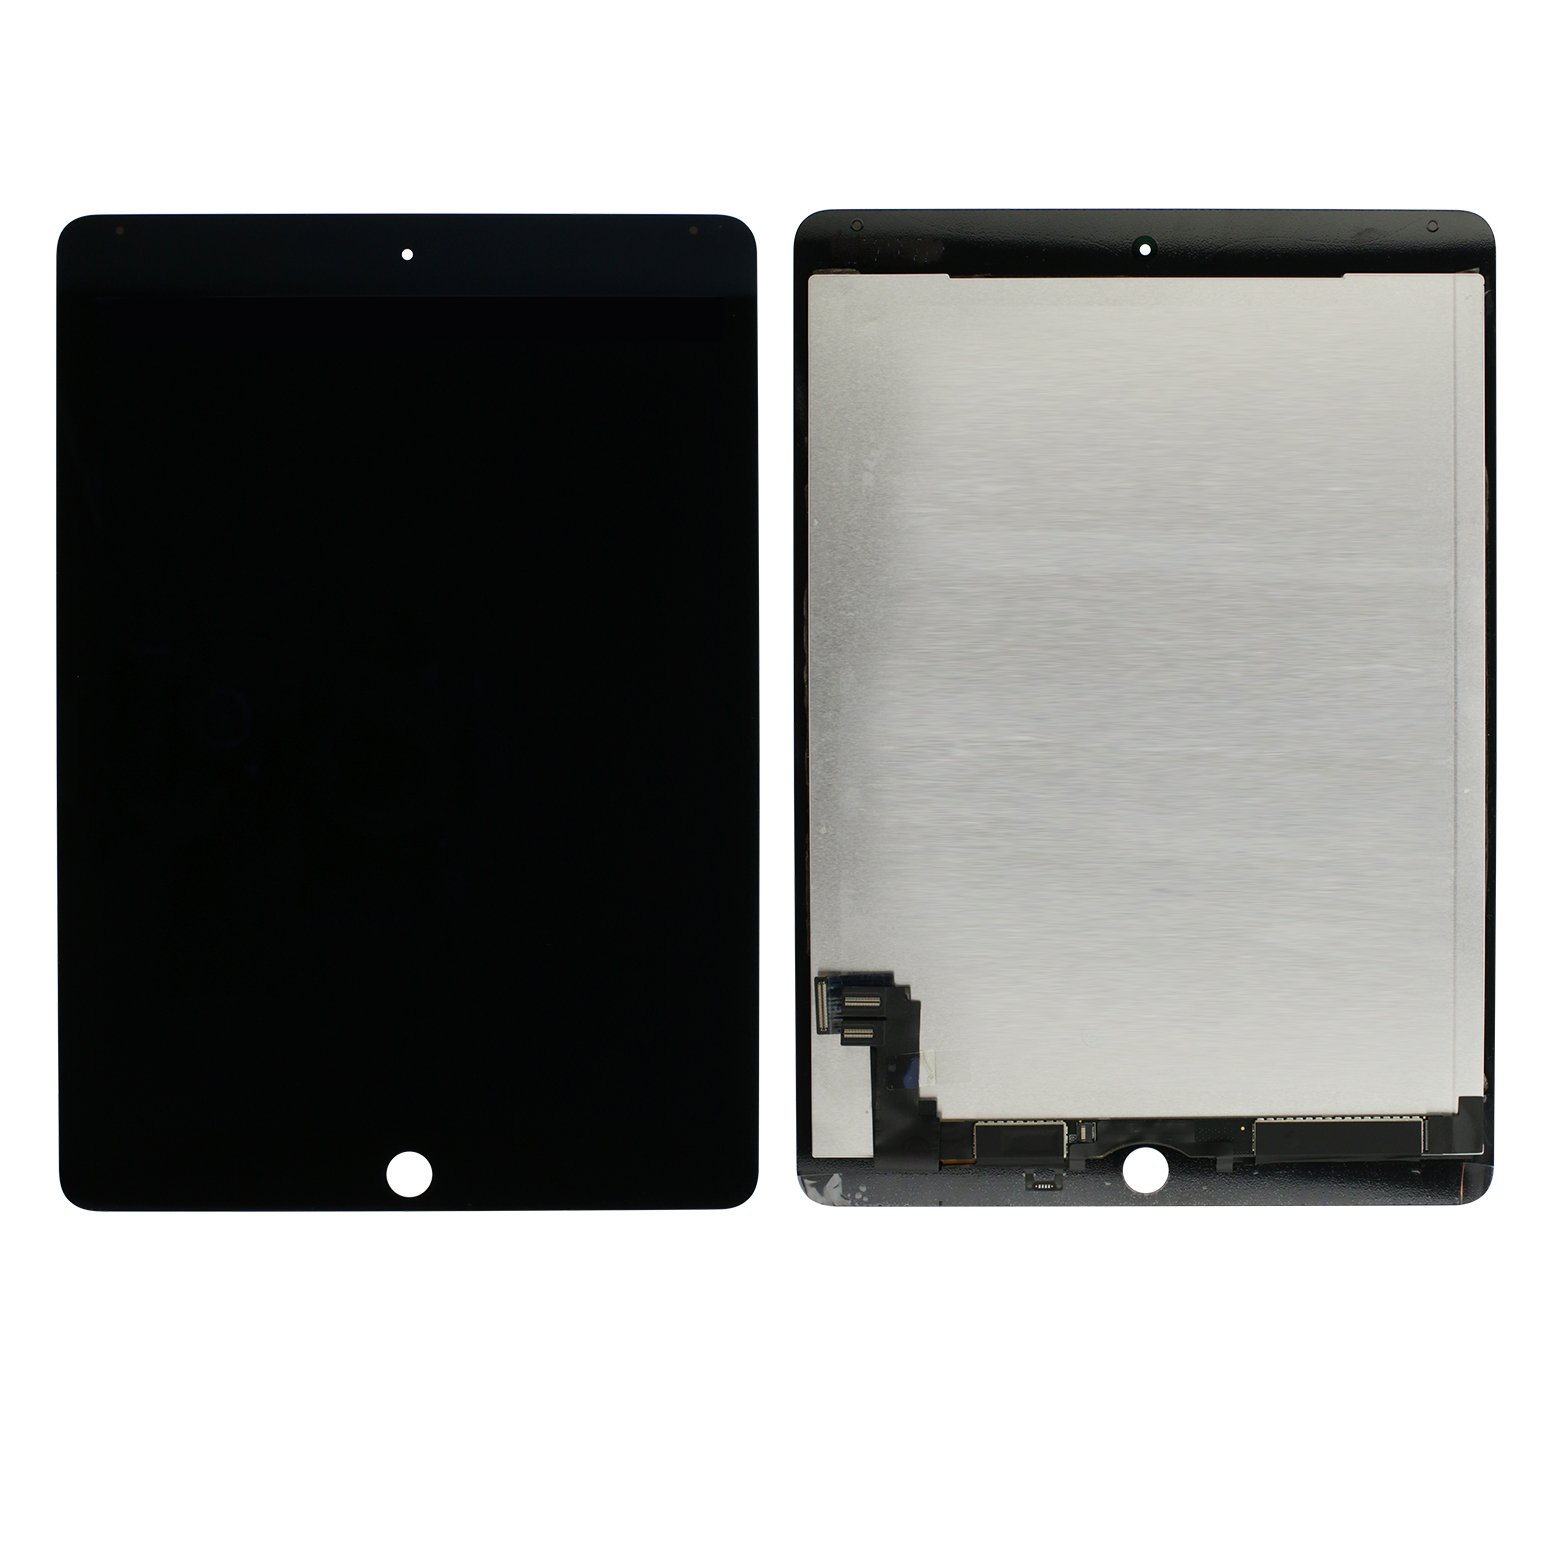 Display completo touch   LCD para iPad Air 2 preto